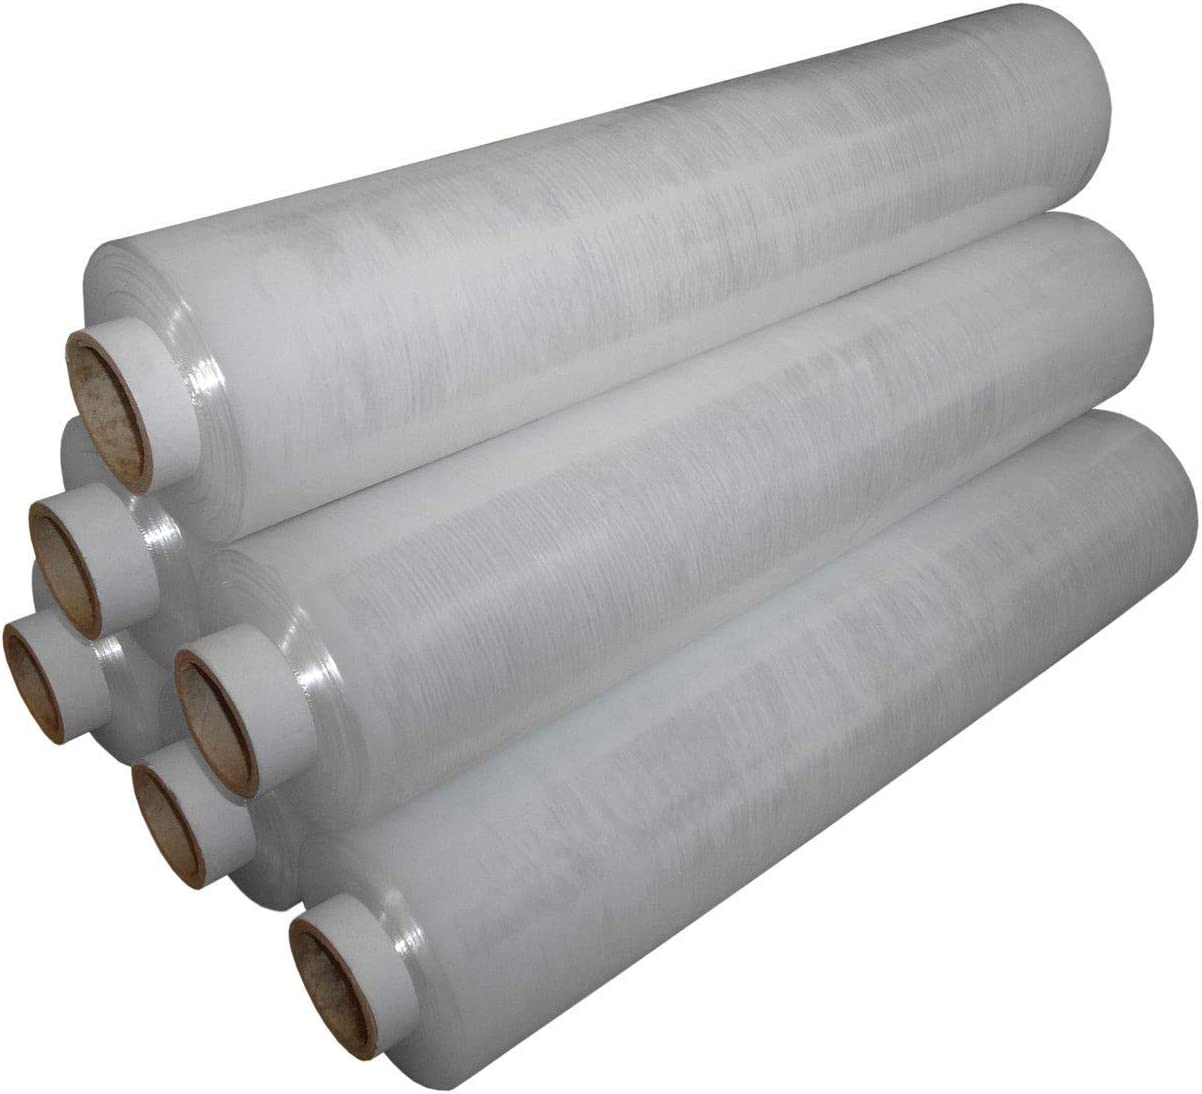 6 Rolls Clear Pallet Stretch  Shrink Wrap Film Non-Extended 400 mm x 250 m 20 mu